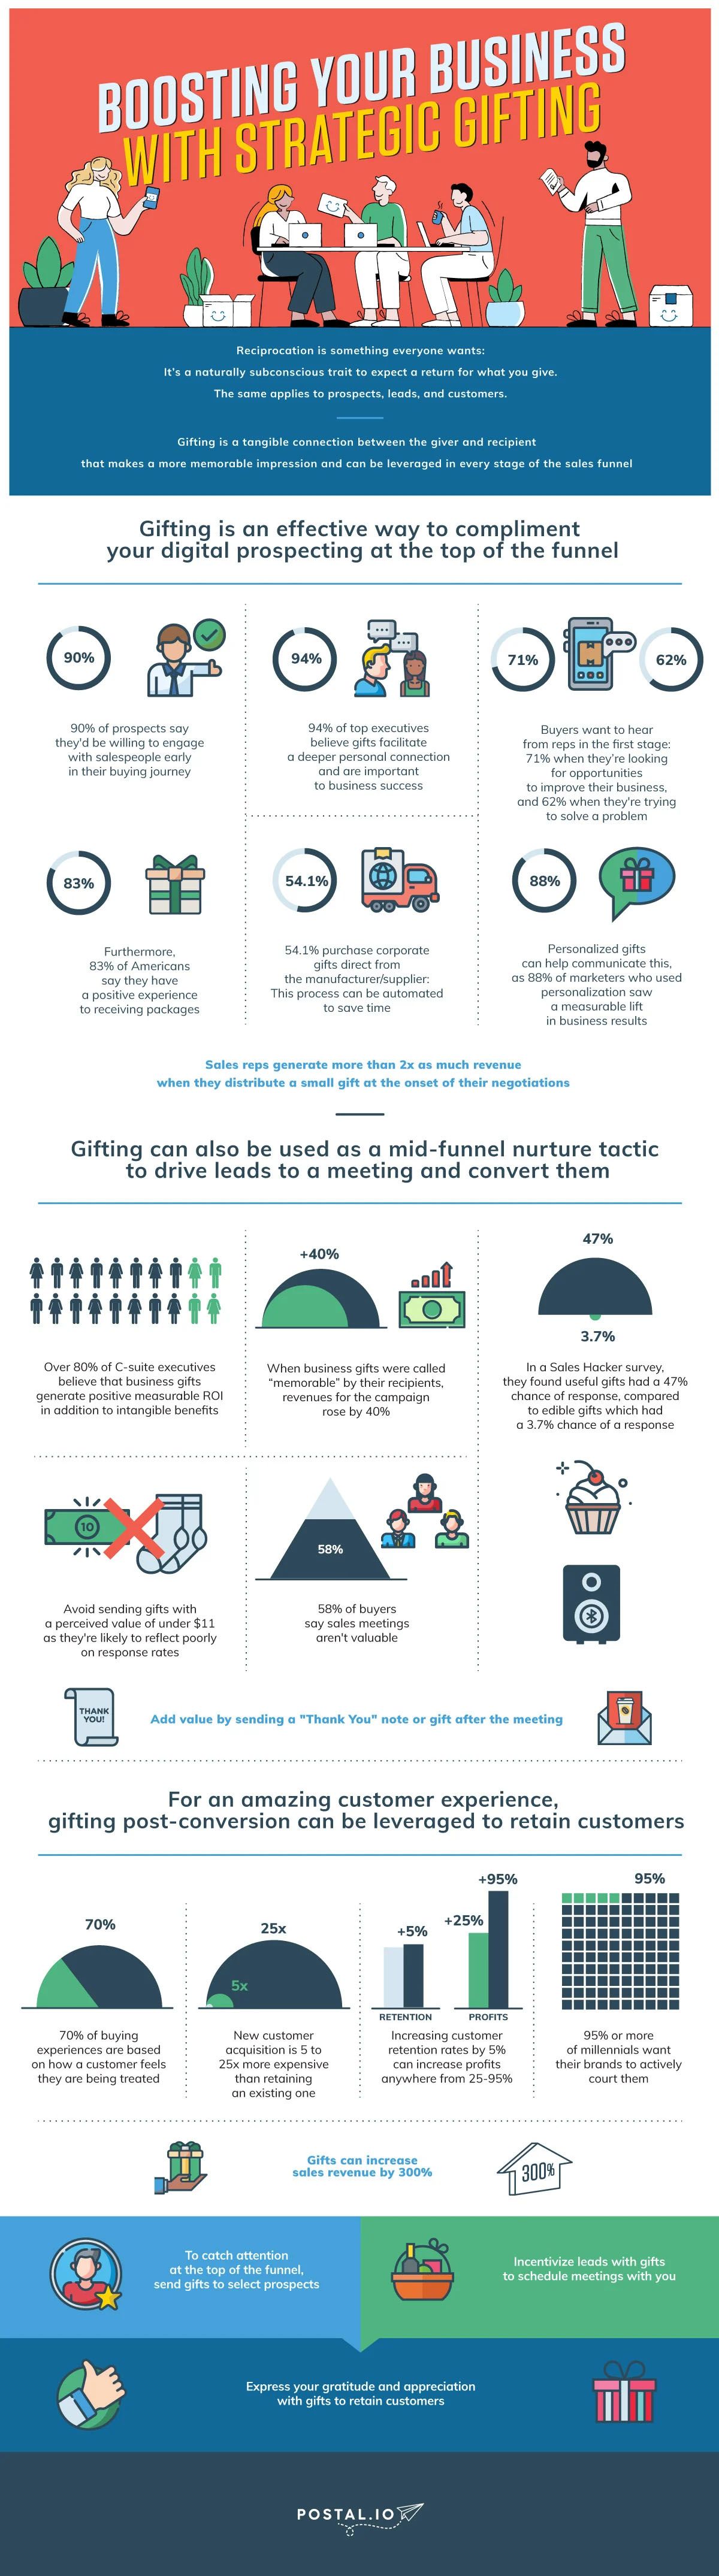 Tips on How to Boost Your Business With Gifts [Infographic]